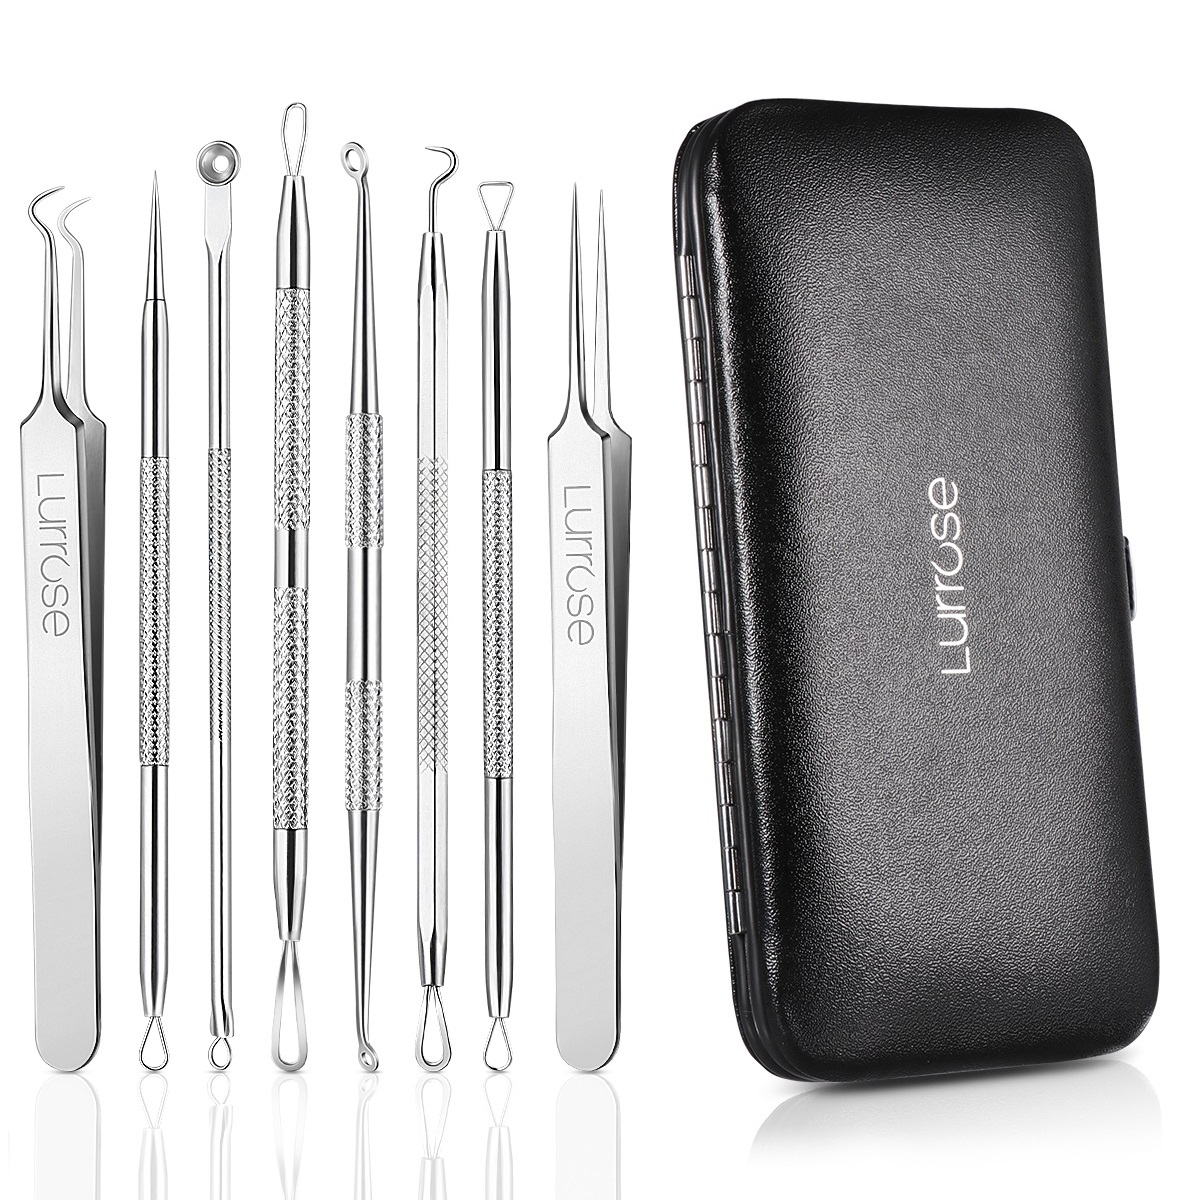 Blackhead Remover Tool, 8 Pcs Pimple Comedone Extractor Popper Tool Acne Removal Kit